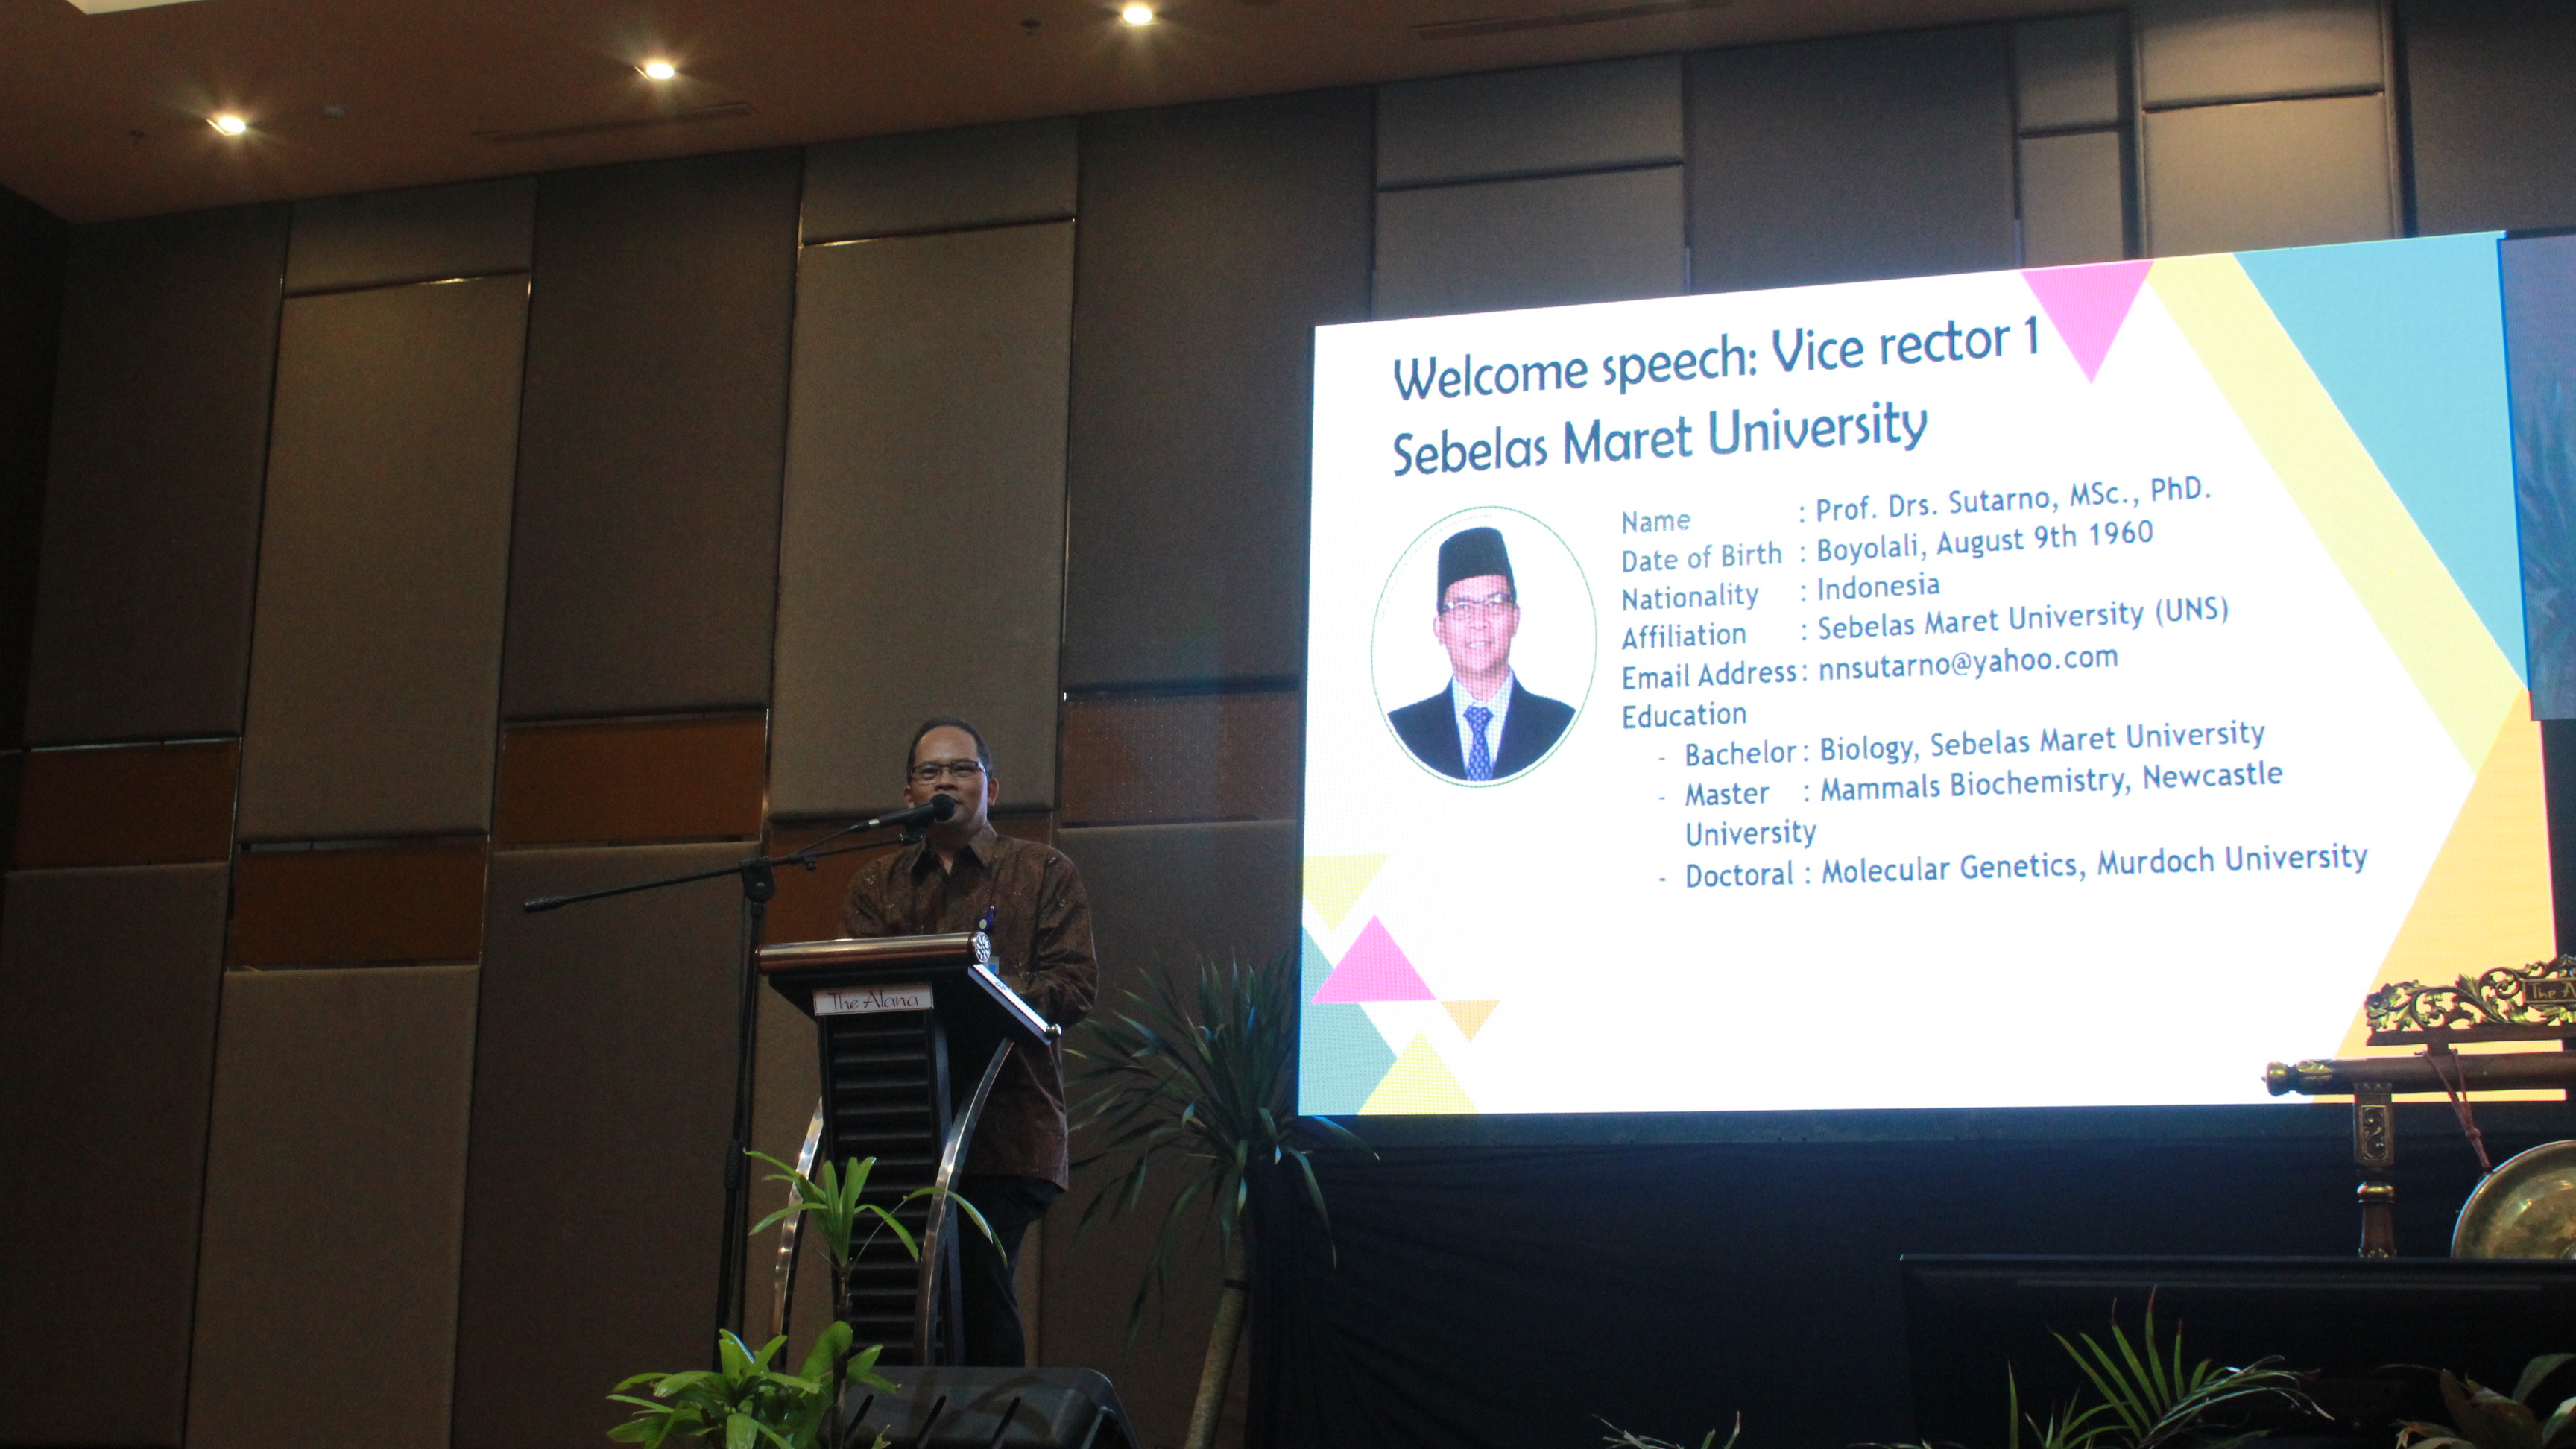 Welcome Speech by Vice Rector of Universitas Sebelas Maret (Prof. Dr. Sutarno)